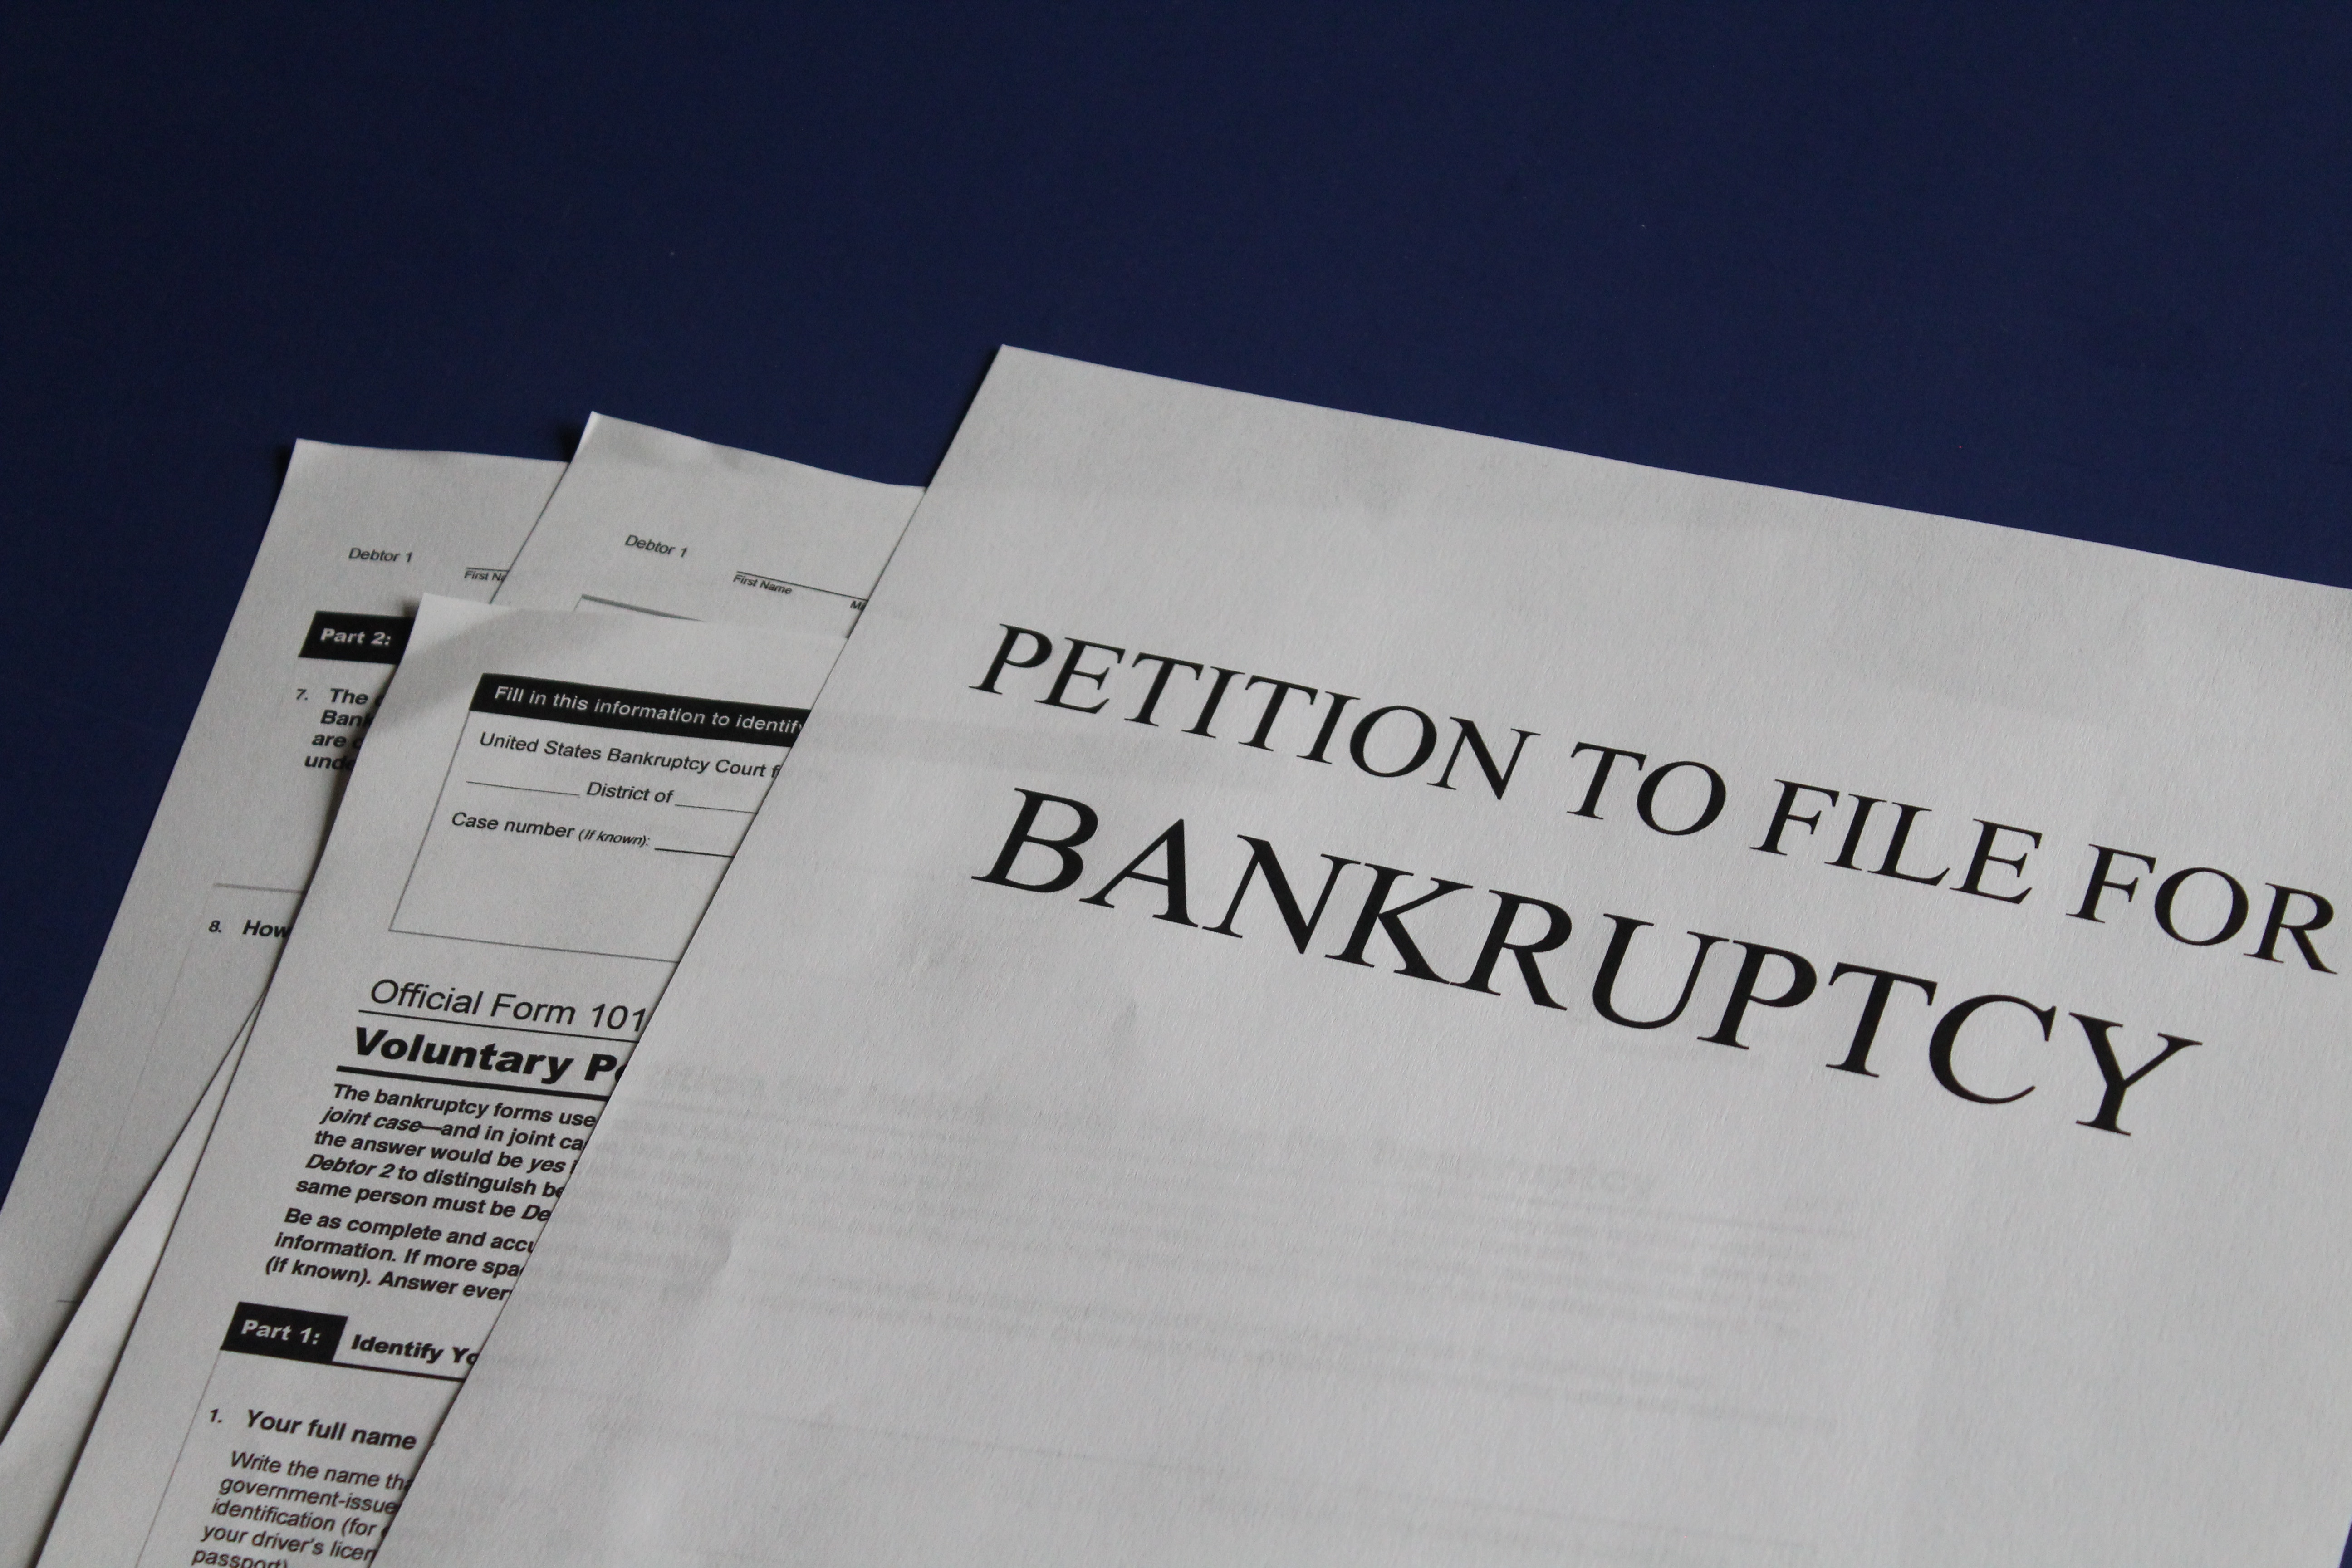 Can You Get A Home Equity Loan After Bankruptcy?